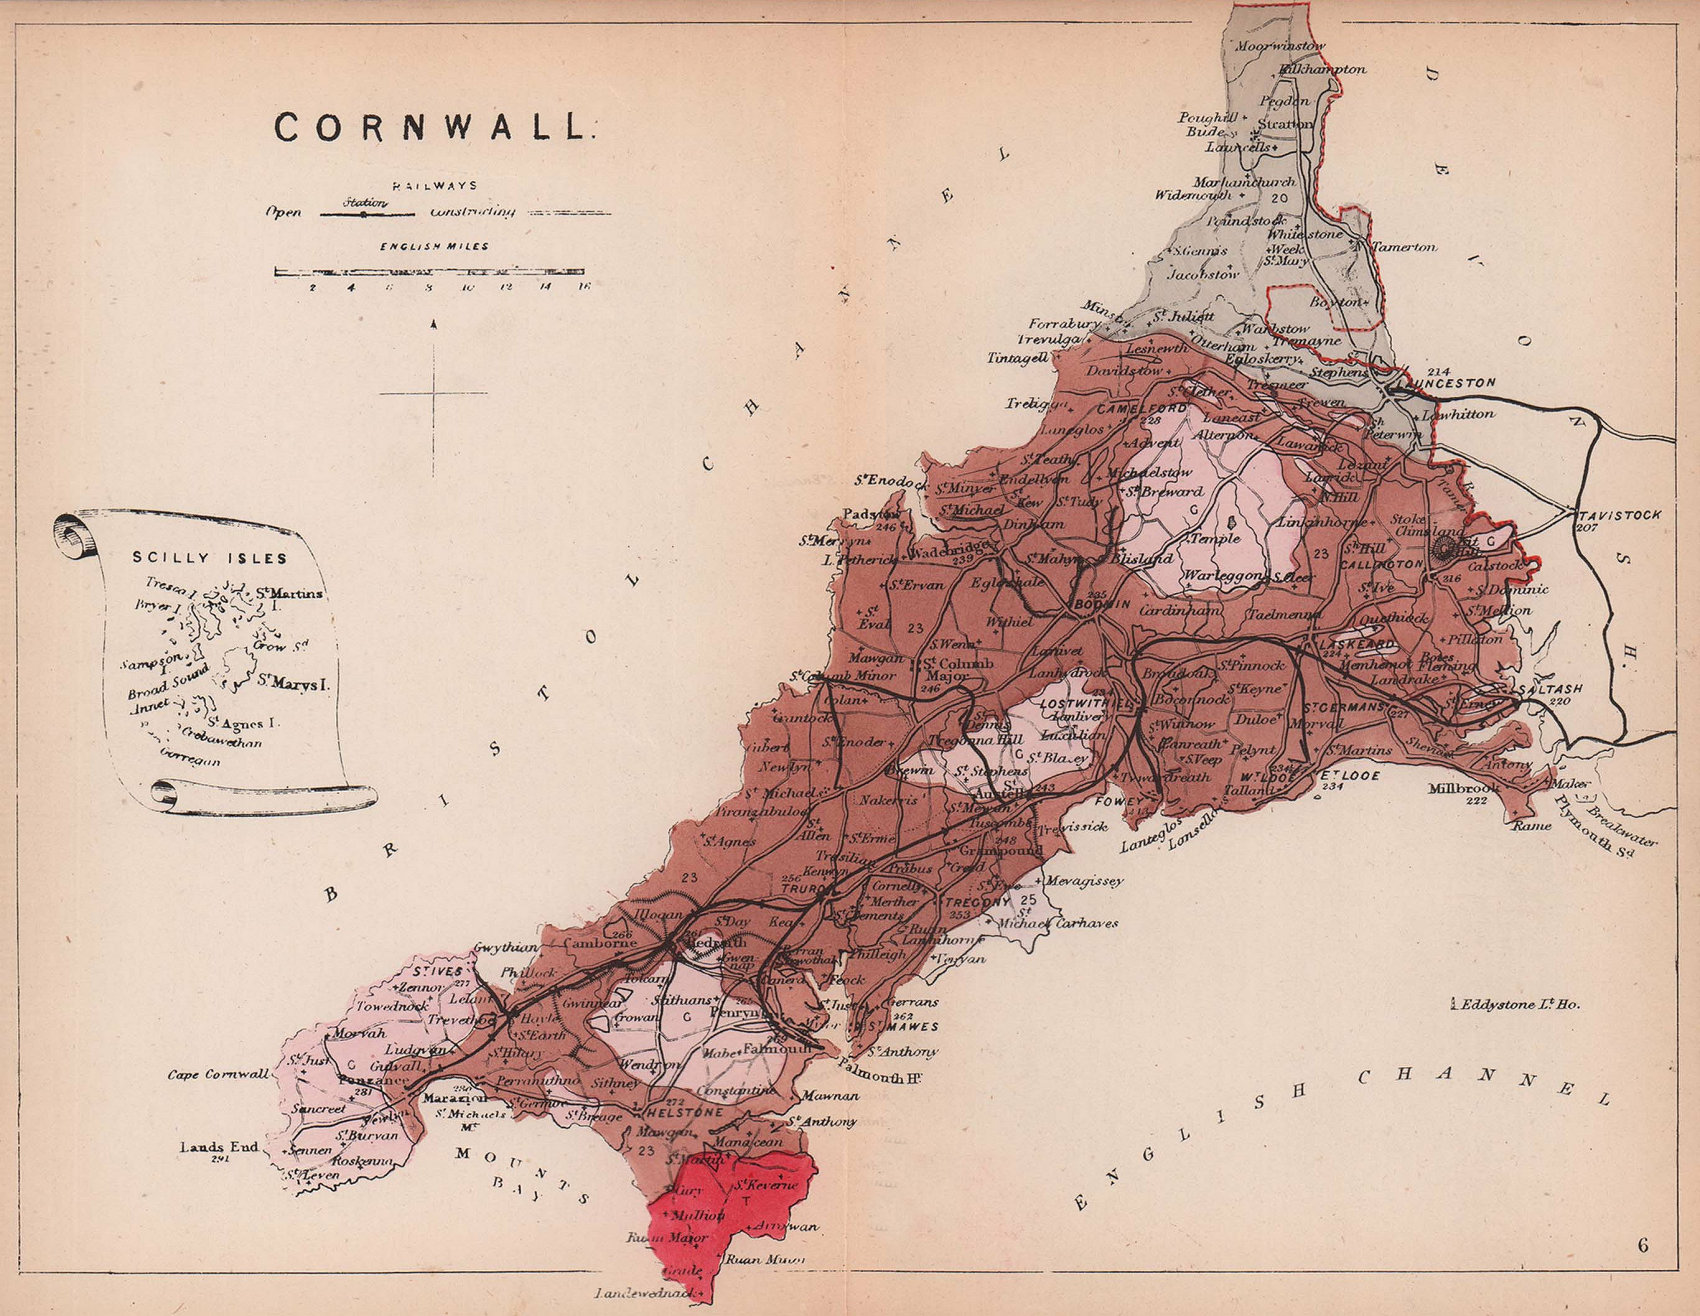 CORNWALL antique geological county map by James Reynolds 1864